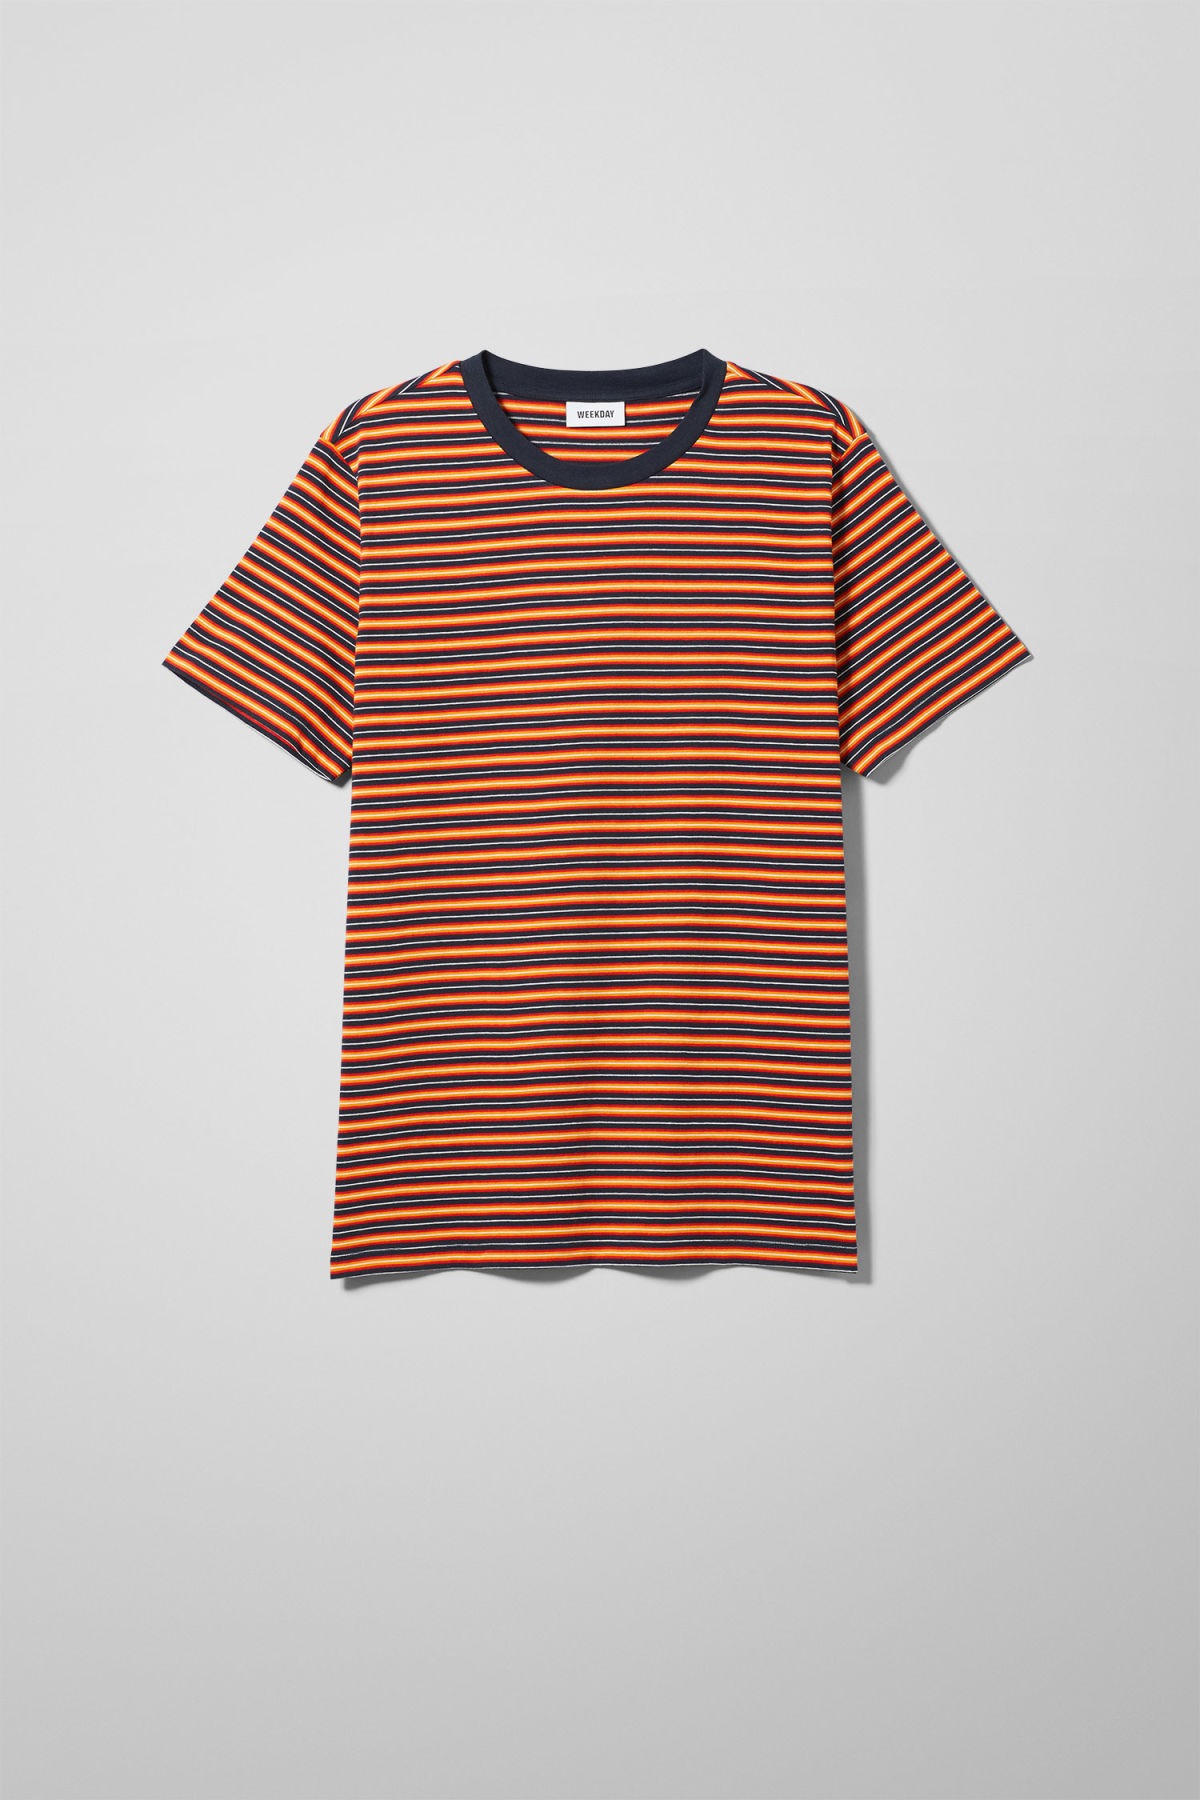 Home Stripes T-shirt - Red